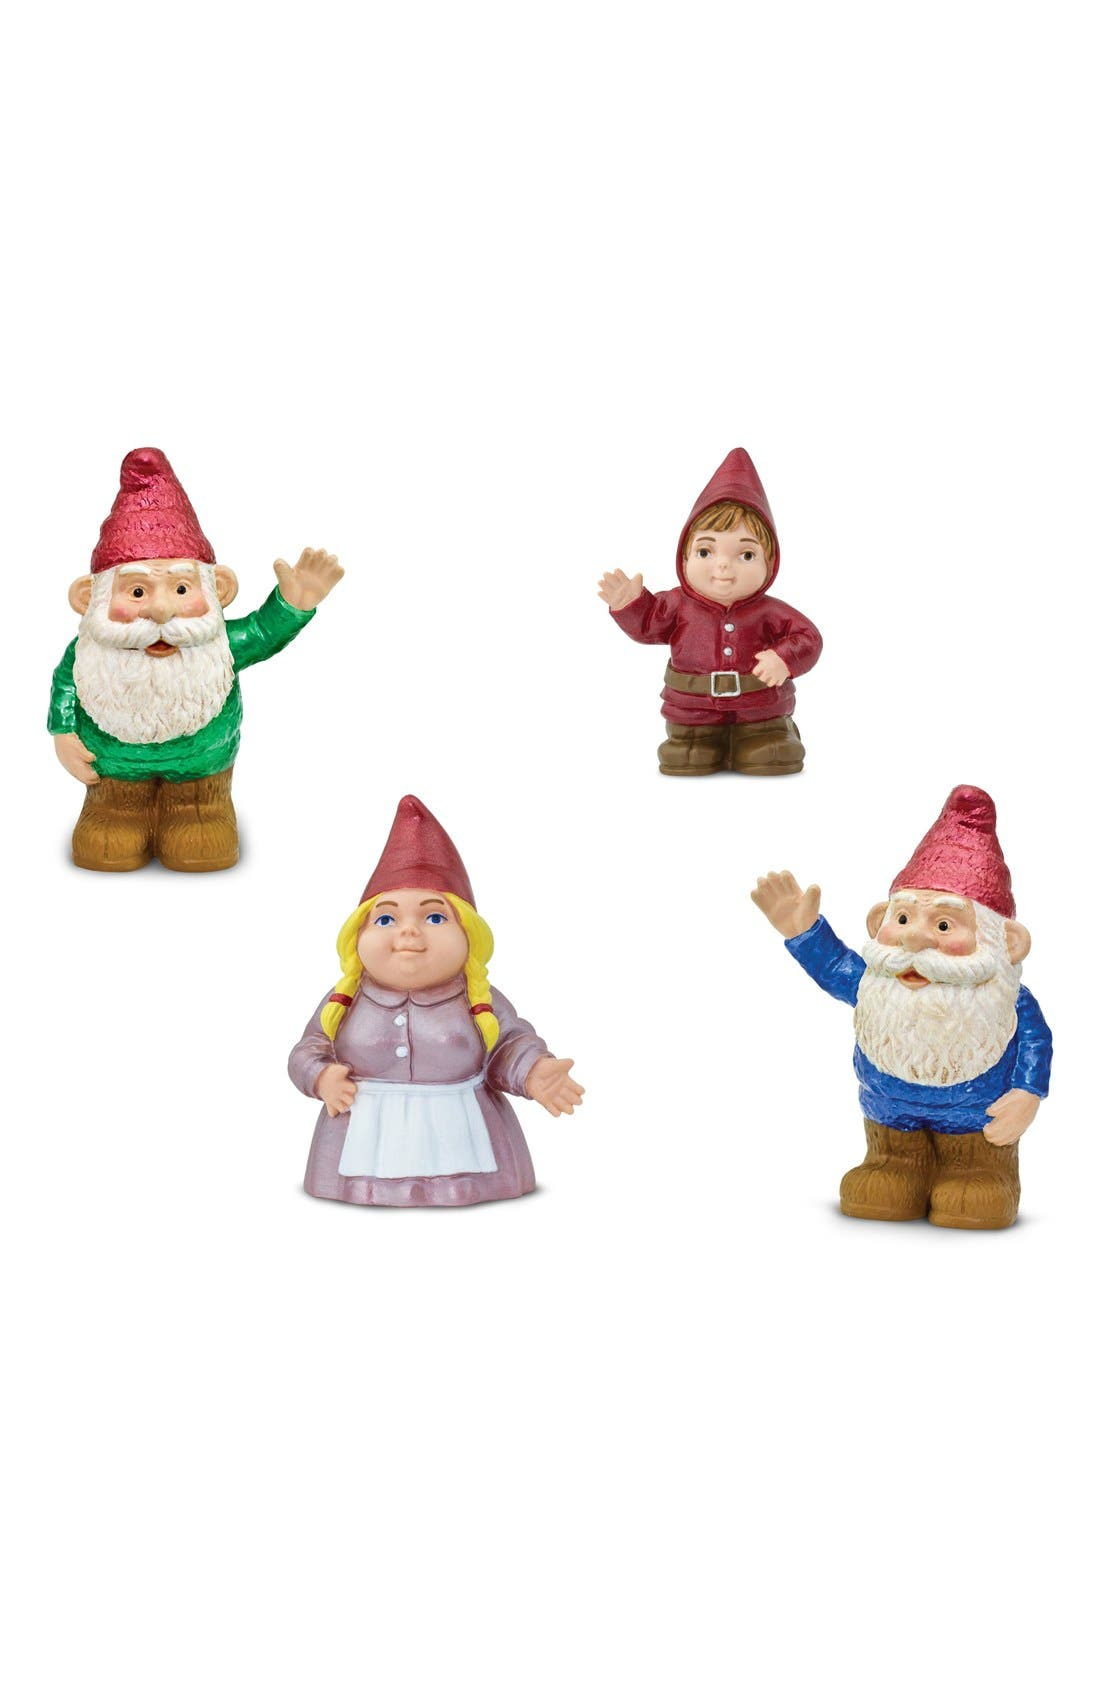 Safari Ltd. Gnome Family Figurines (Set of 4)